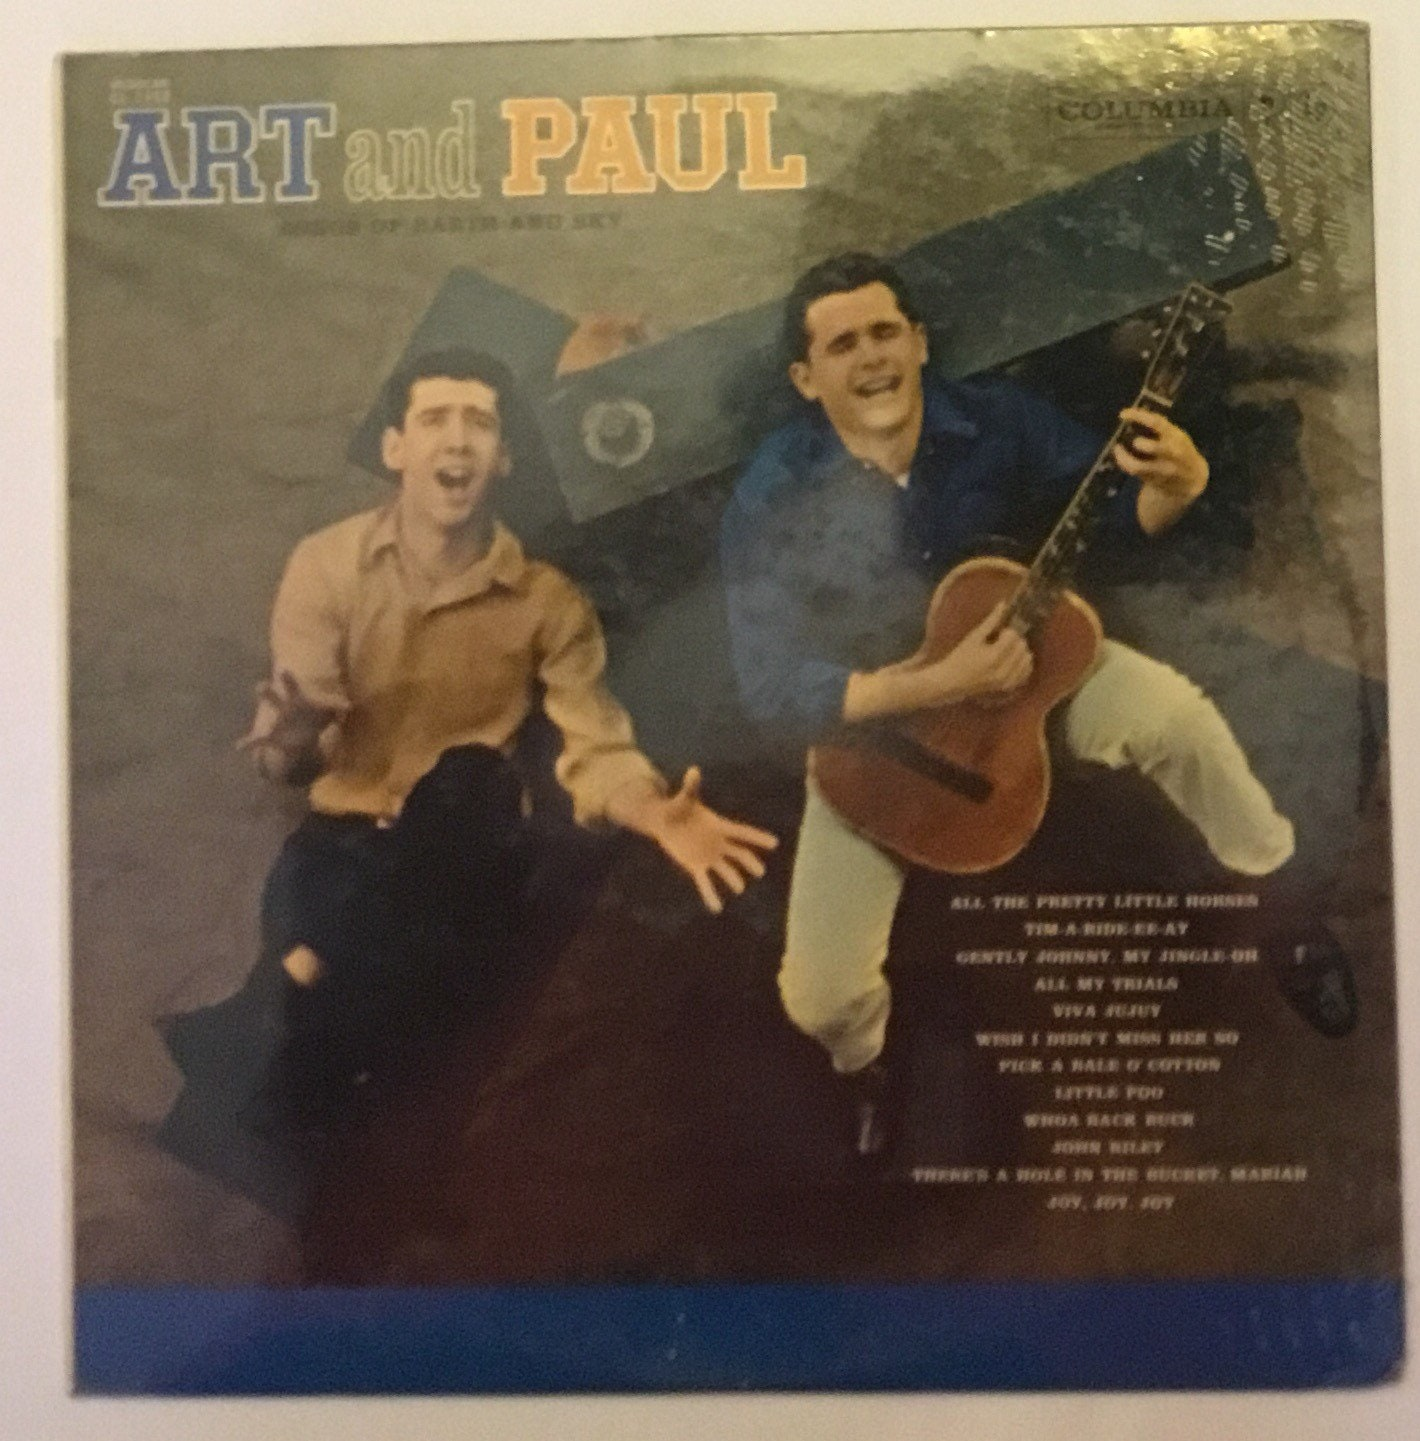 Art and Paul Songs Of Earth And Sky Vintage Vinyl Record Album New In  Shrink Wrap 1960